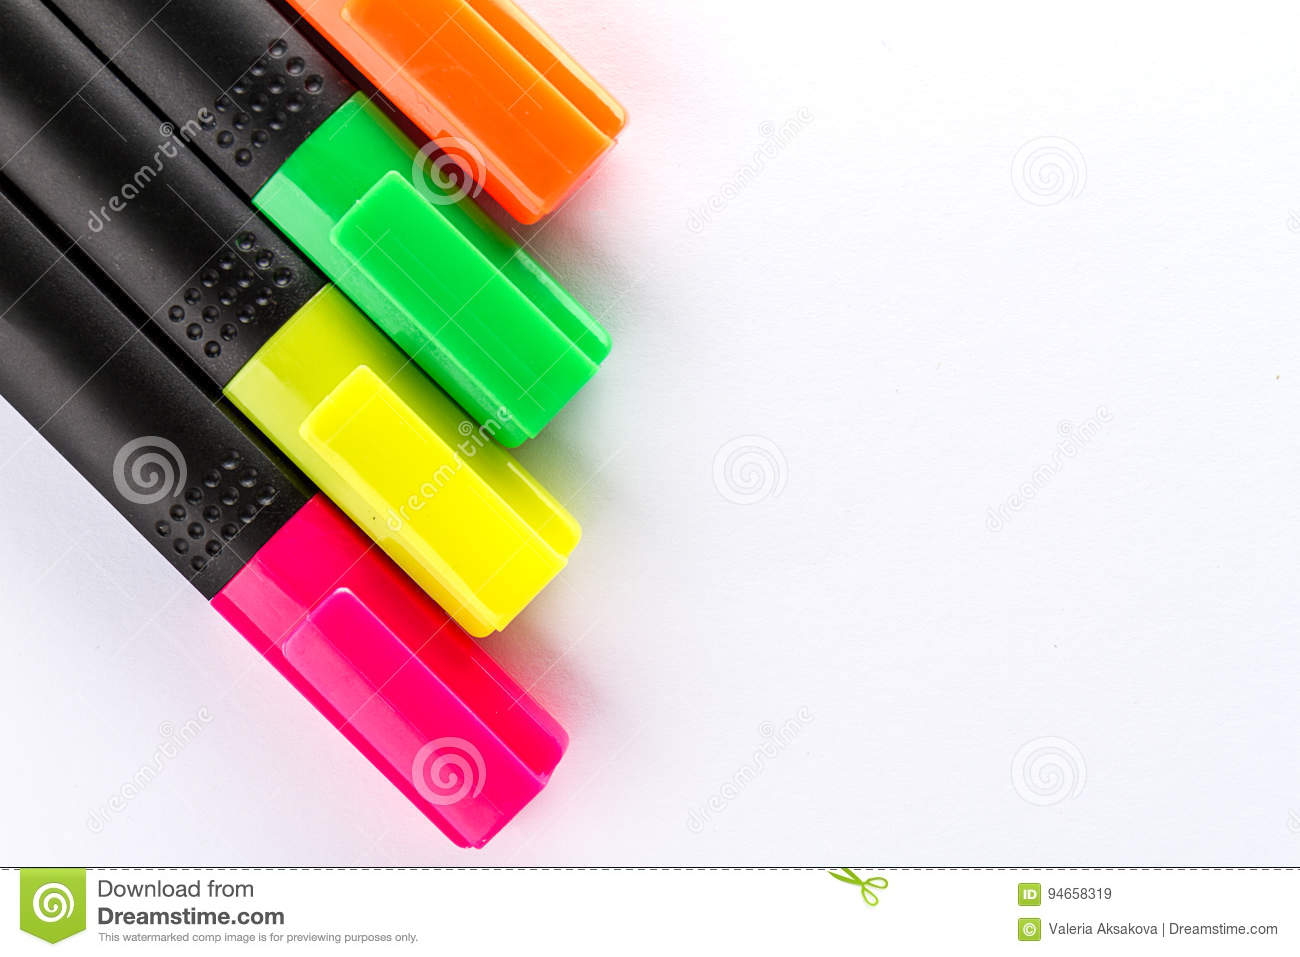 Different Colorful Markers With Office Accessories On White Office Table Top View Work Study Concept Stock Image Image Of Conceptual Office 94658319